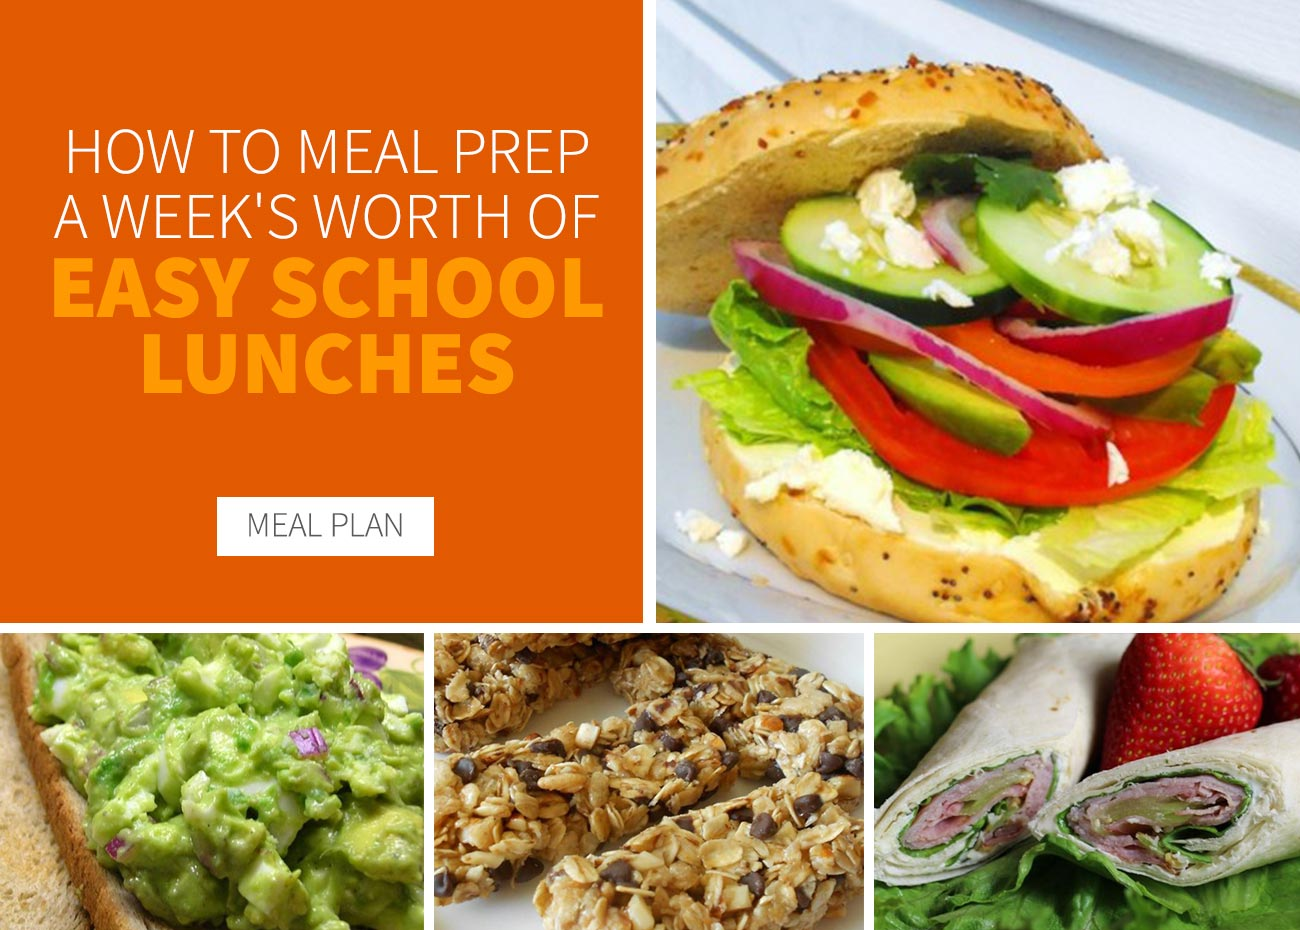 How to Meal Prep for a Week's Worth of Easy School Lunches